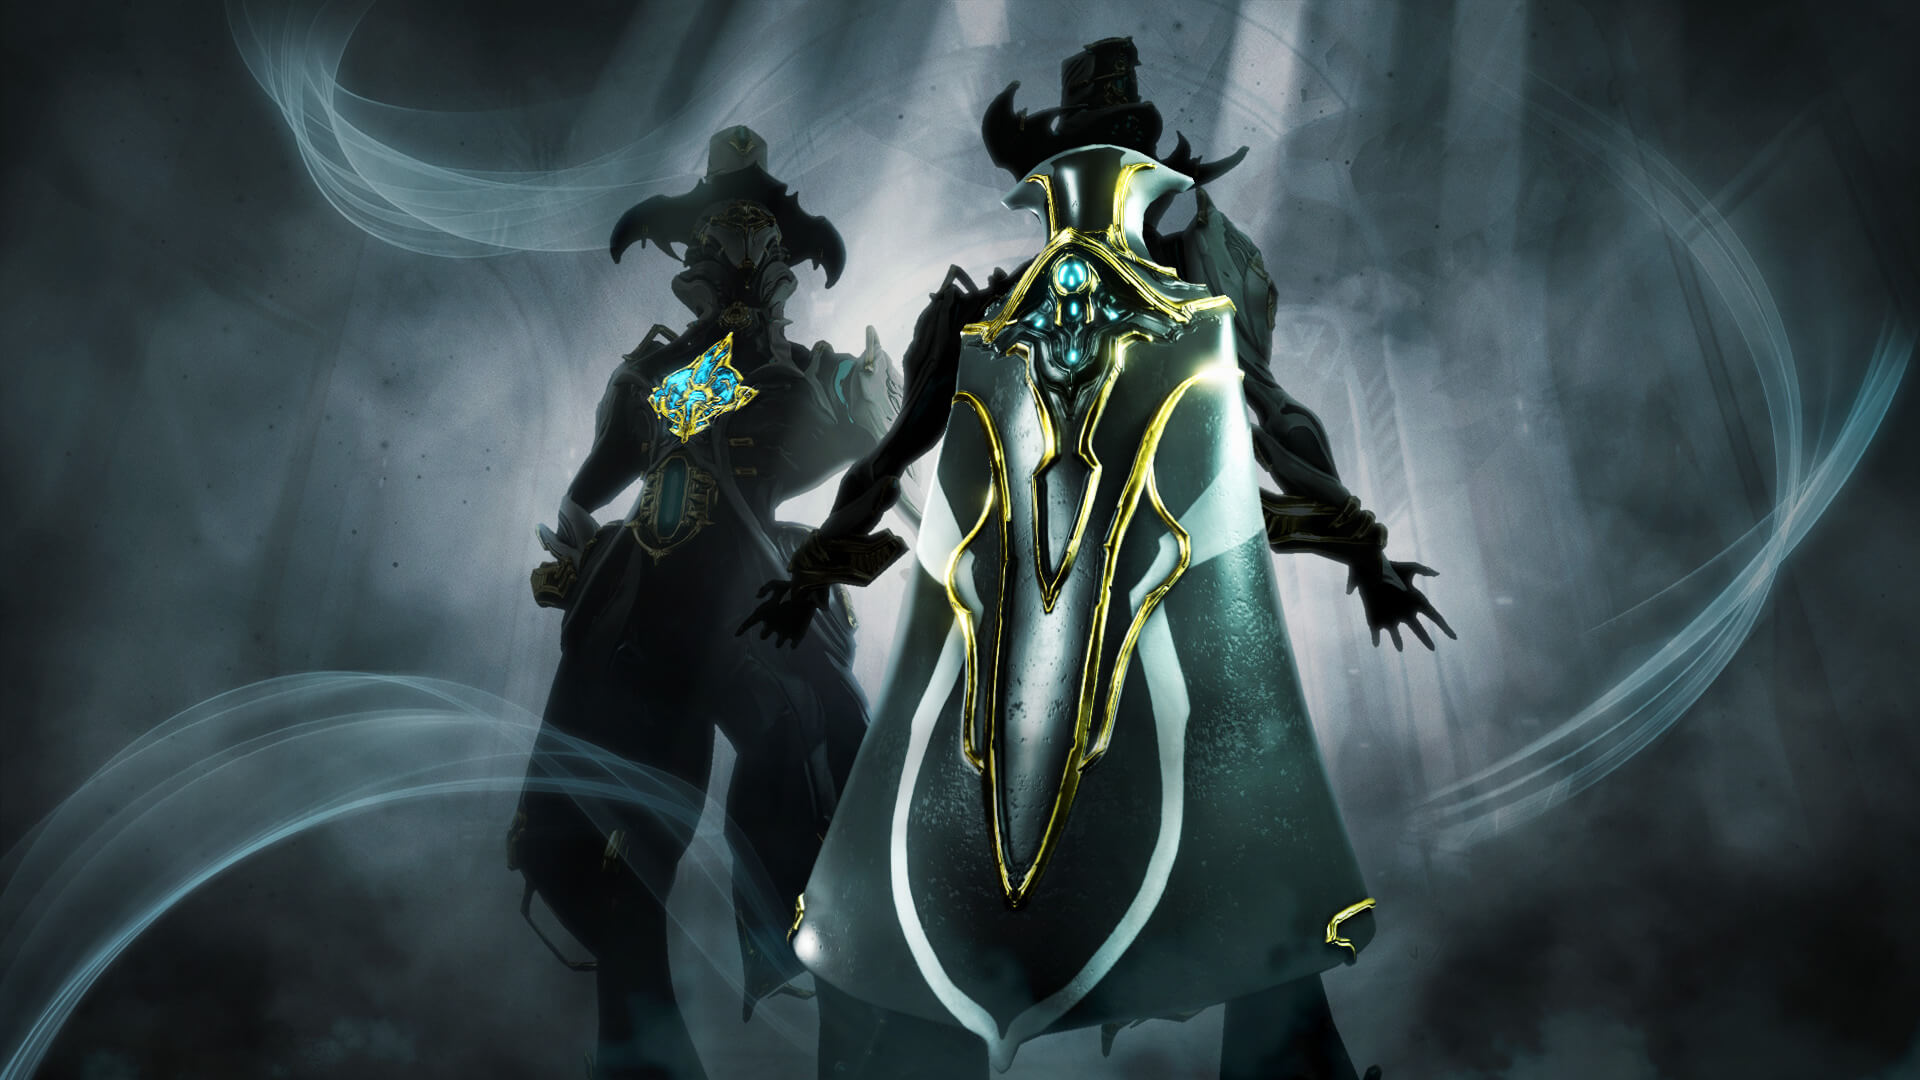 Limbo-Prime-Access-Oblivia-Prime-syndana-and-Rift-Walker-Prime-glyph